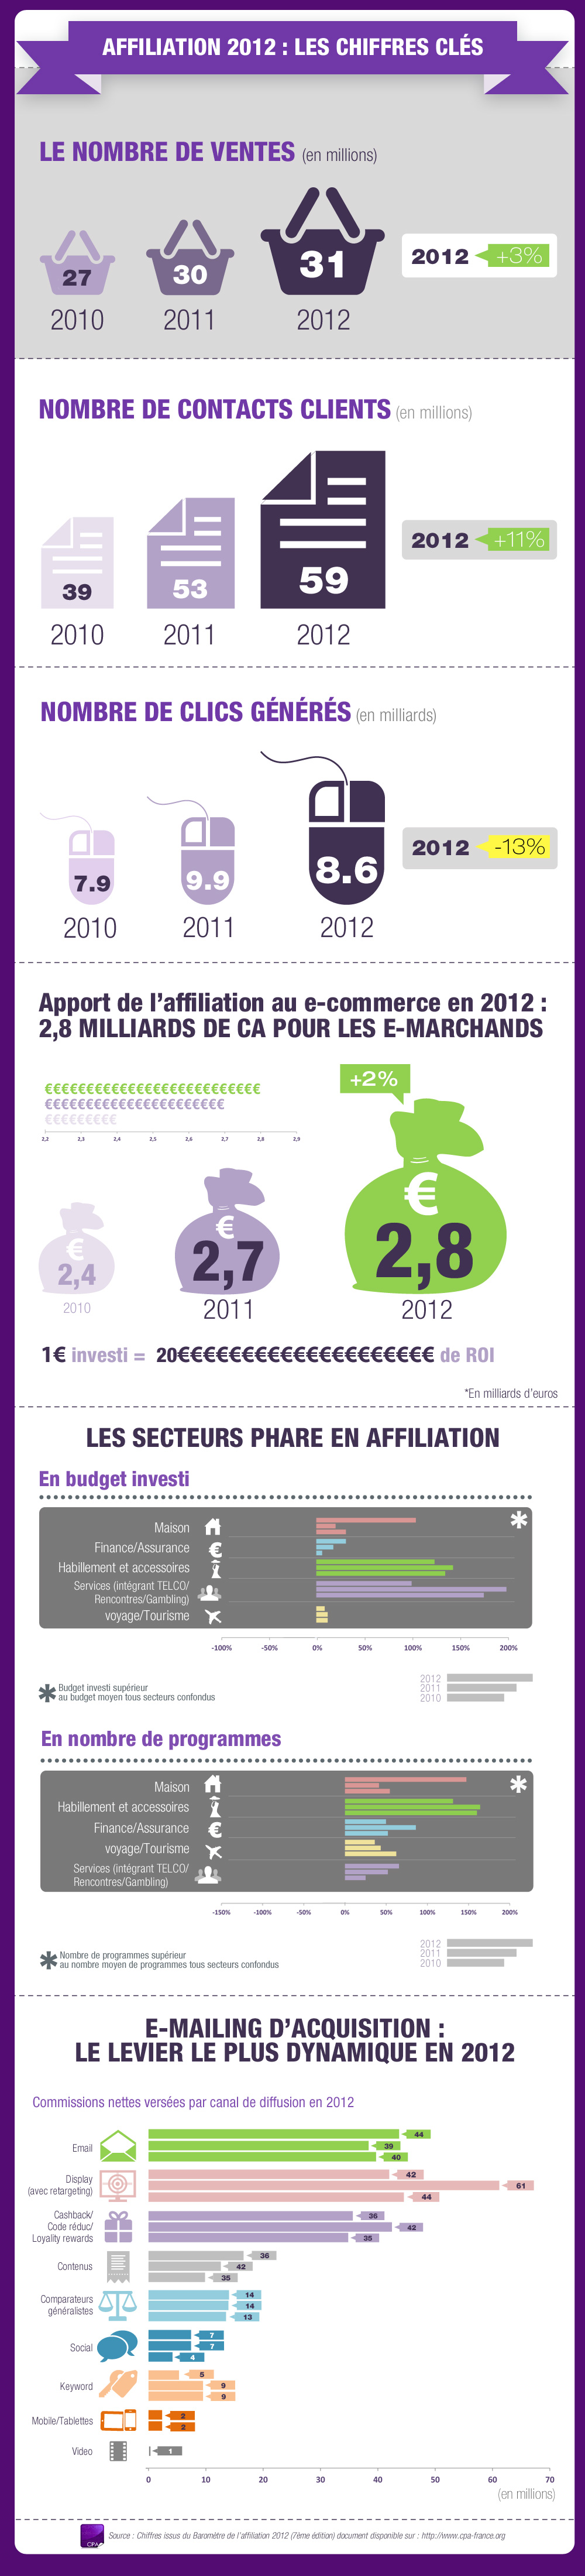 CPA-chiffres-cles-affiliation-infographie-2013